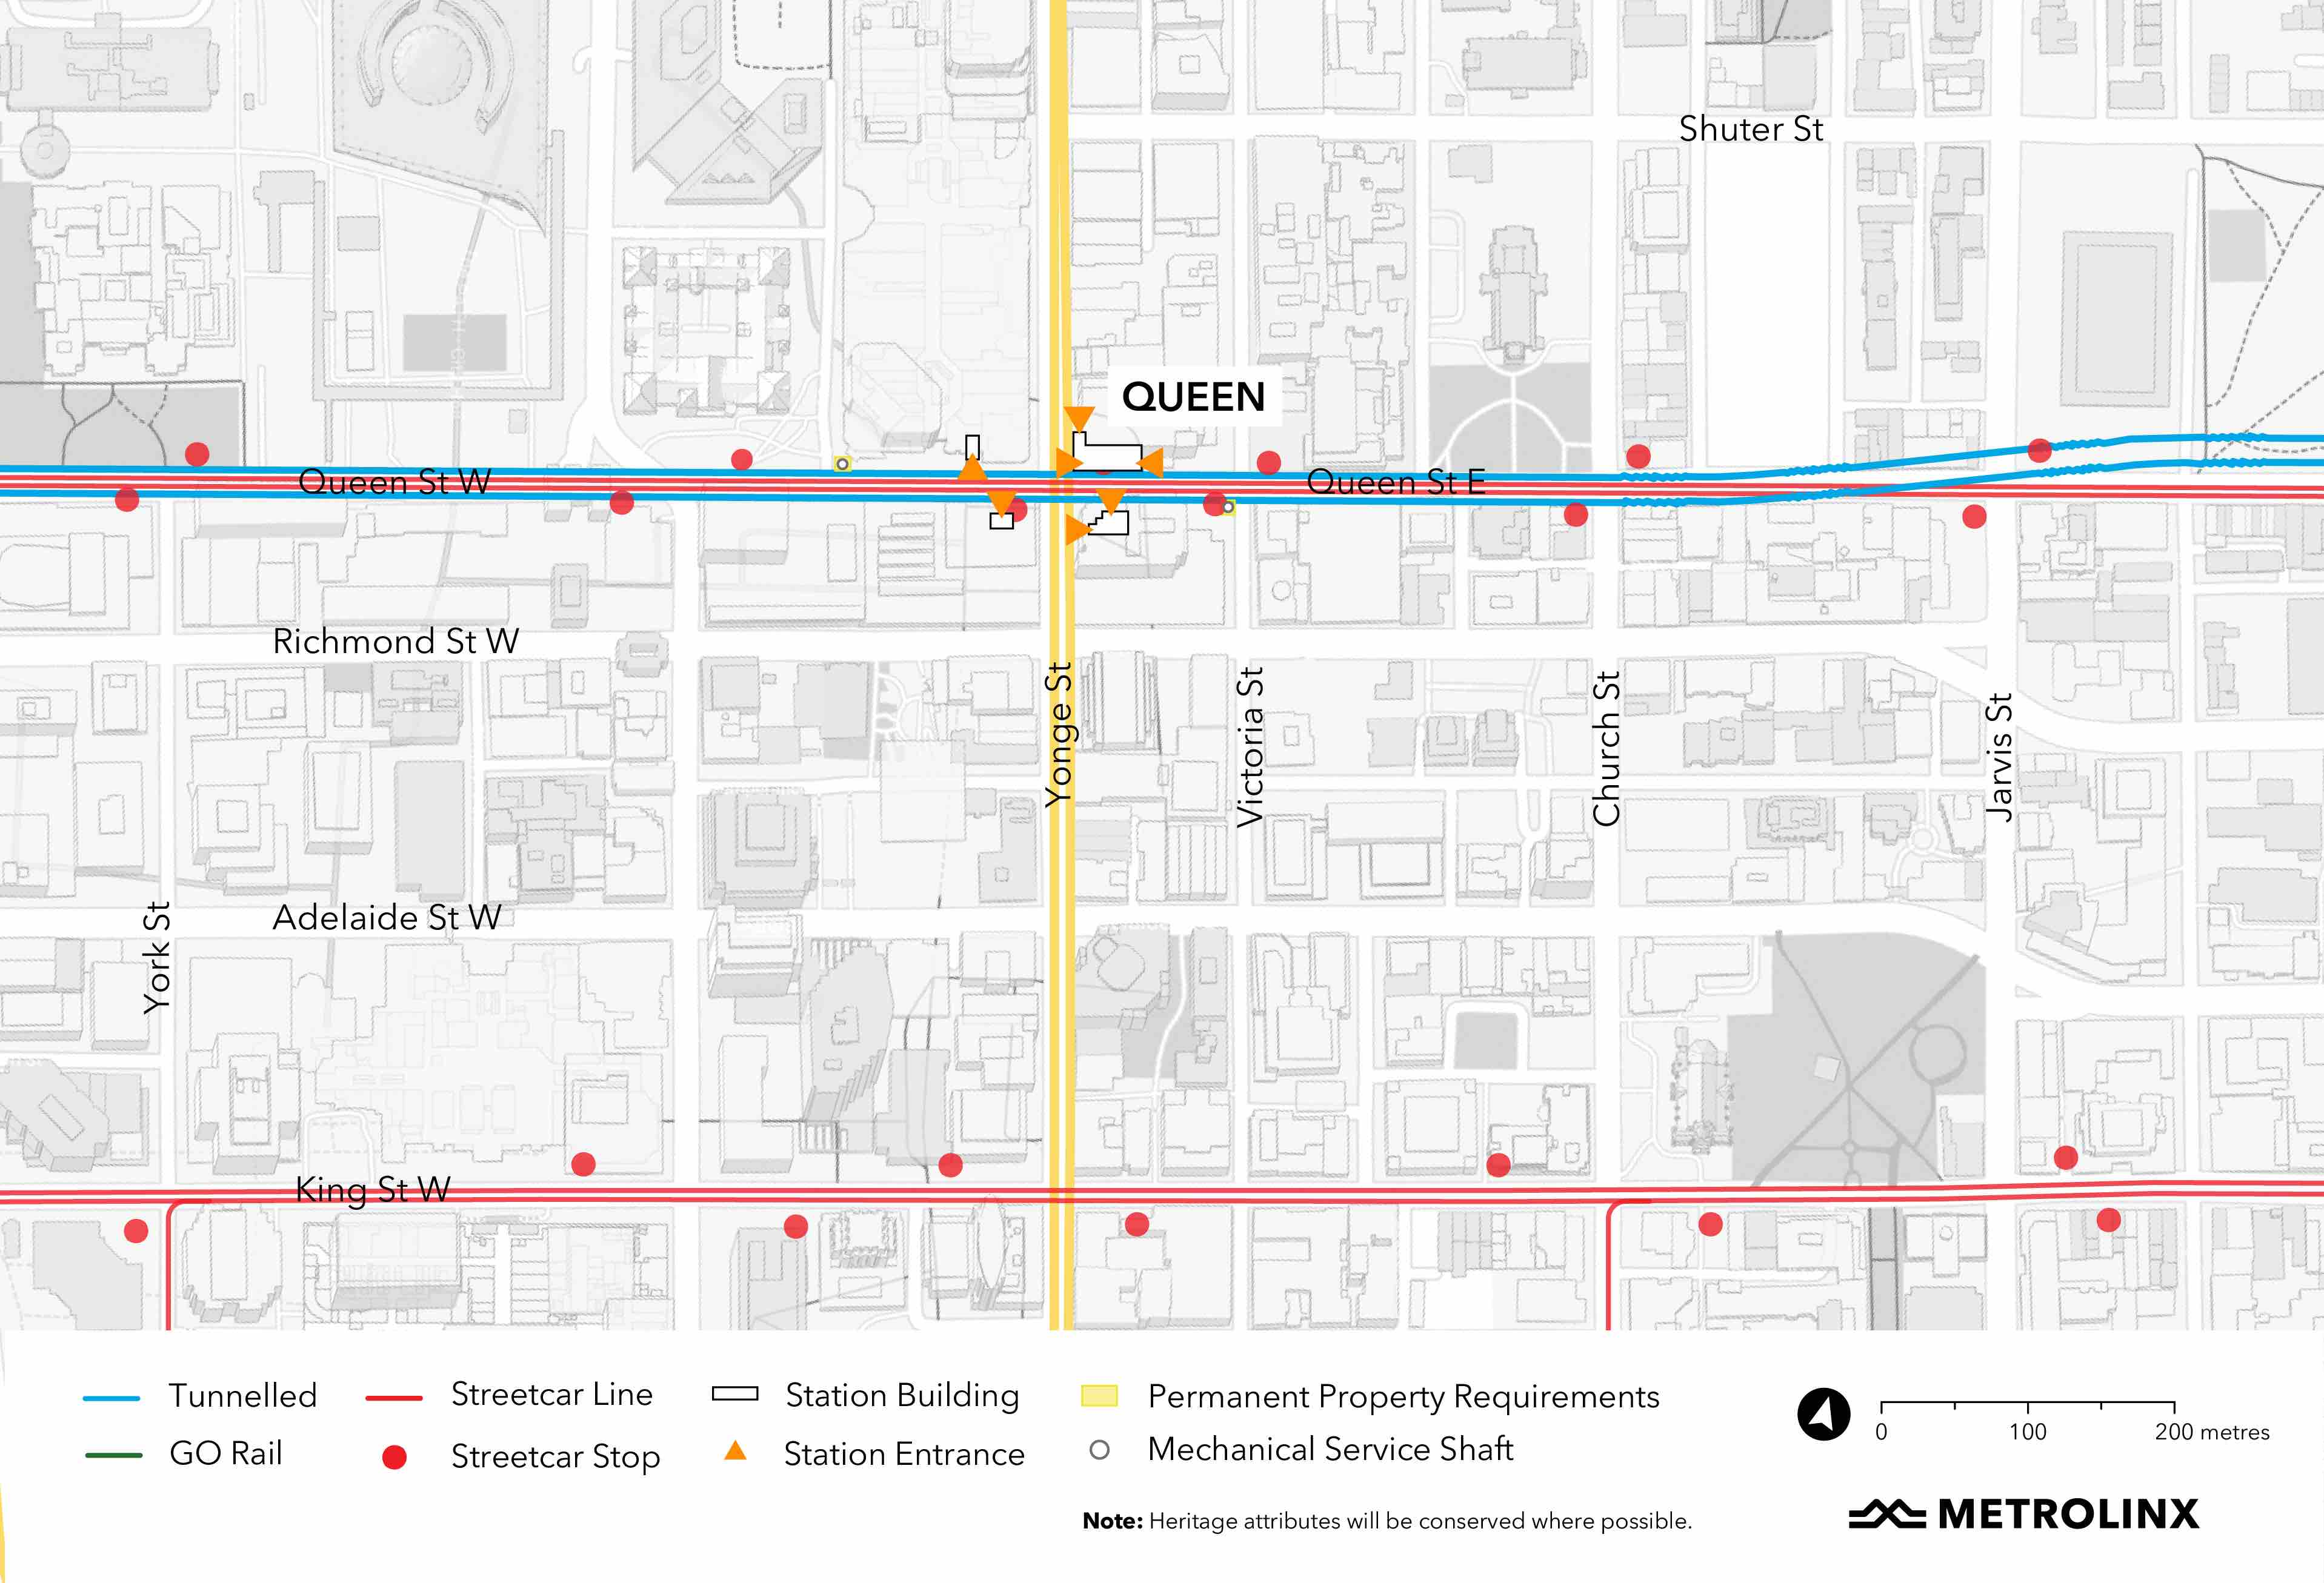 map containing queen station